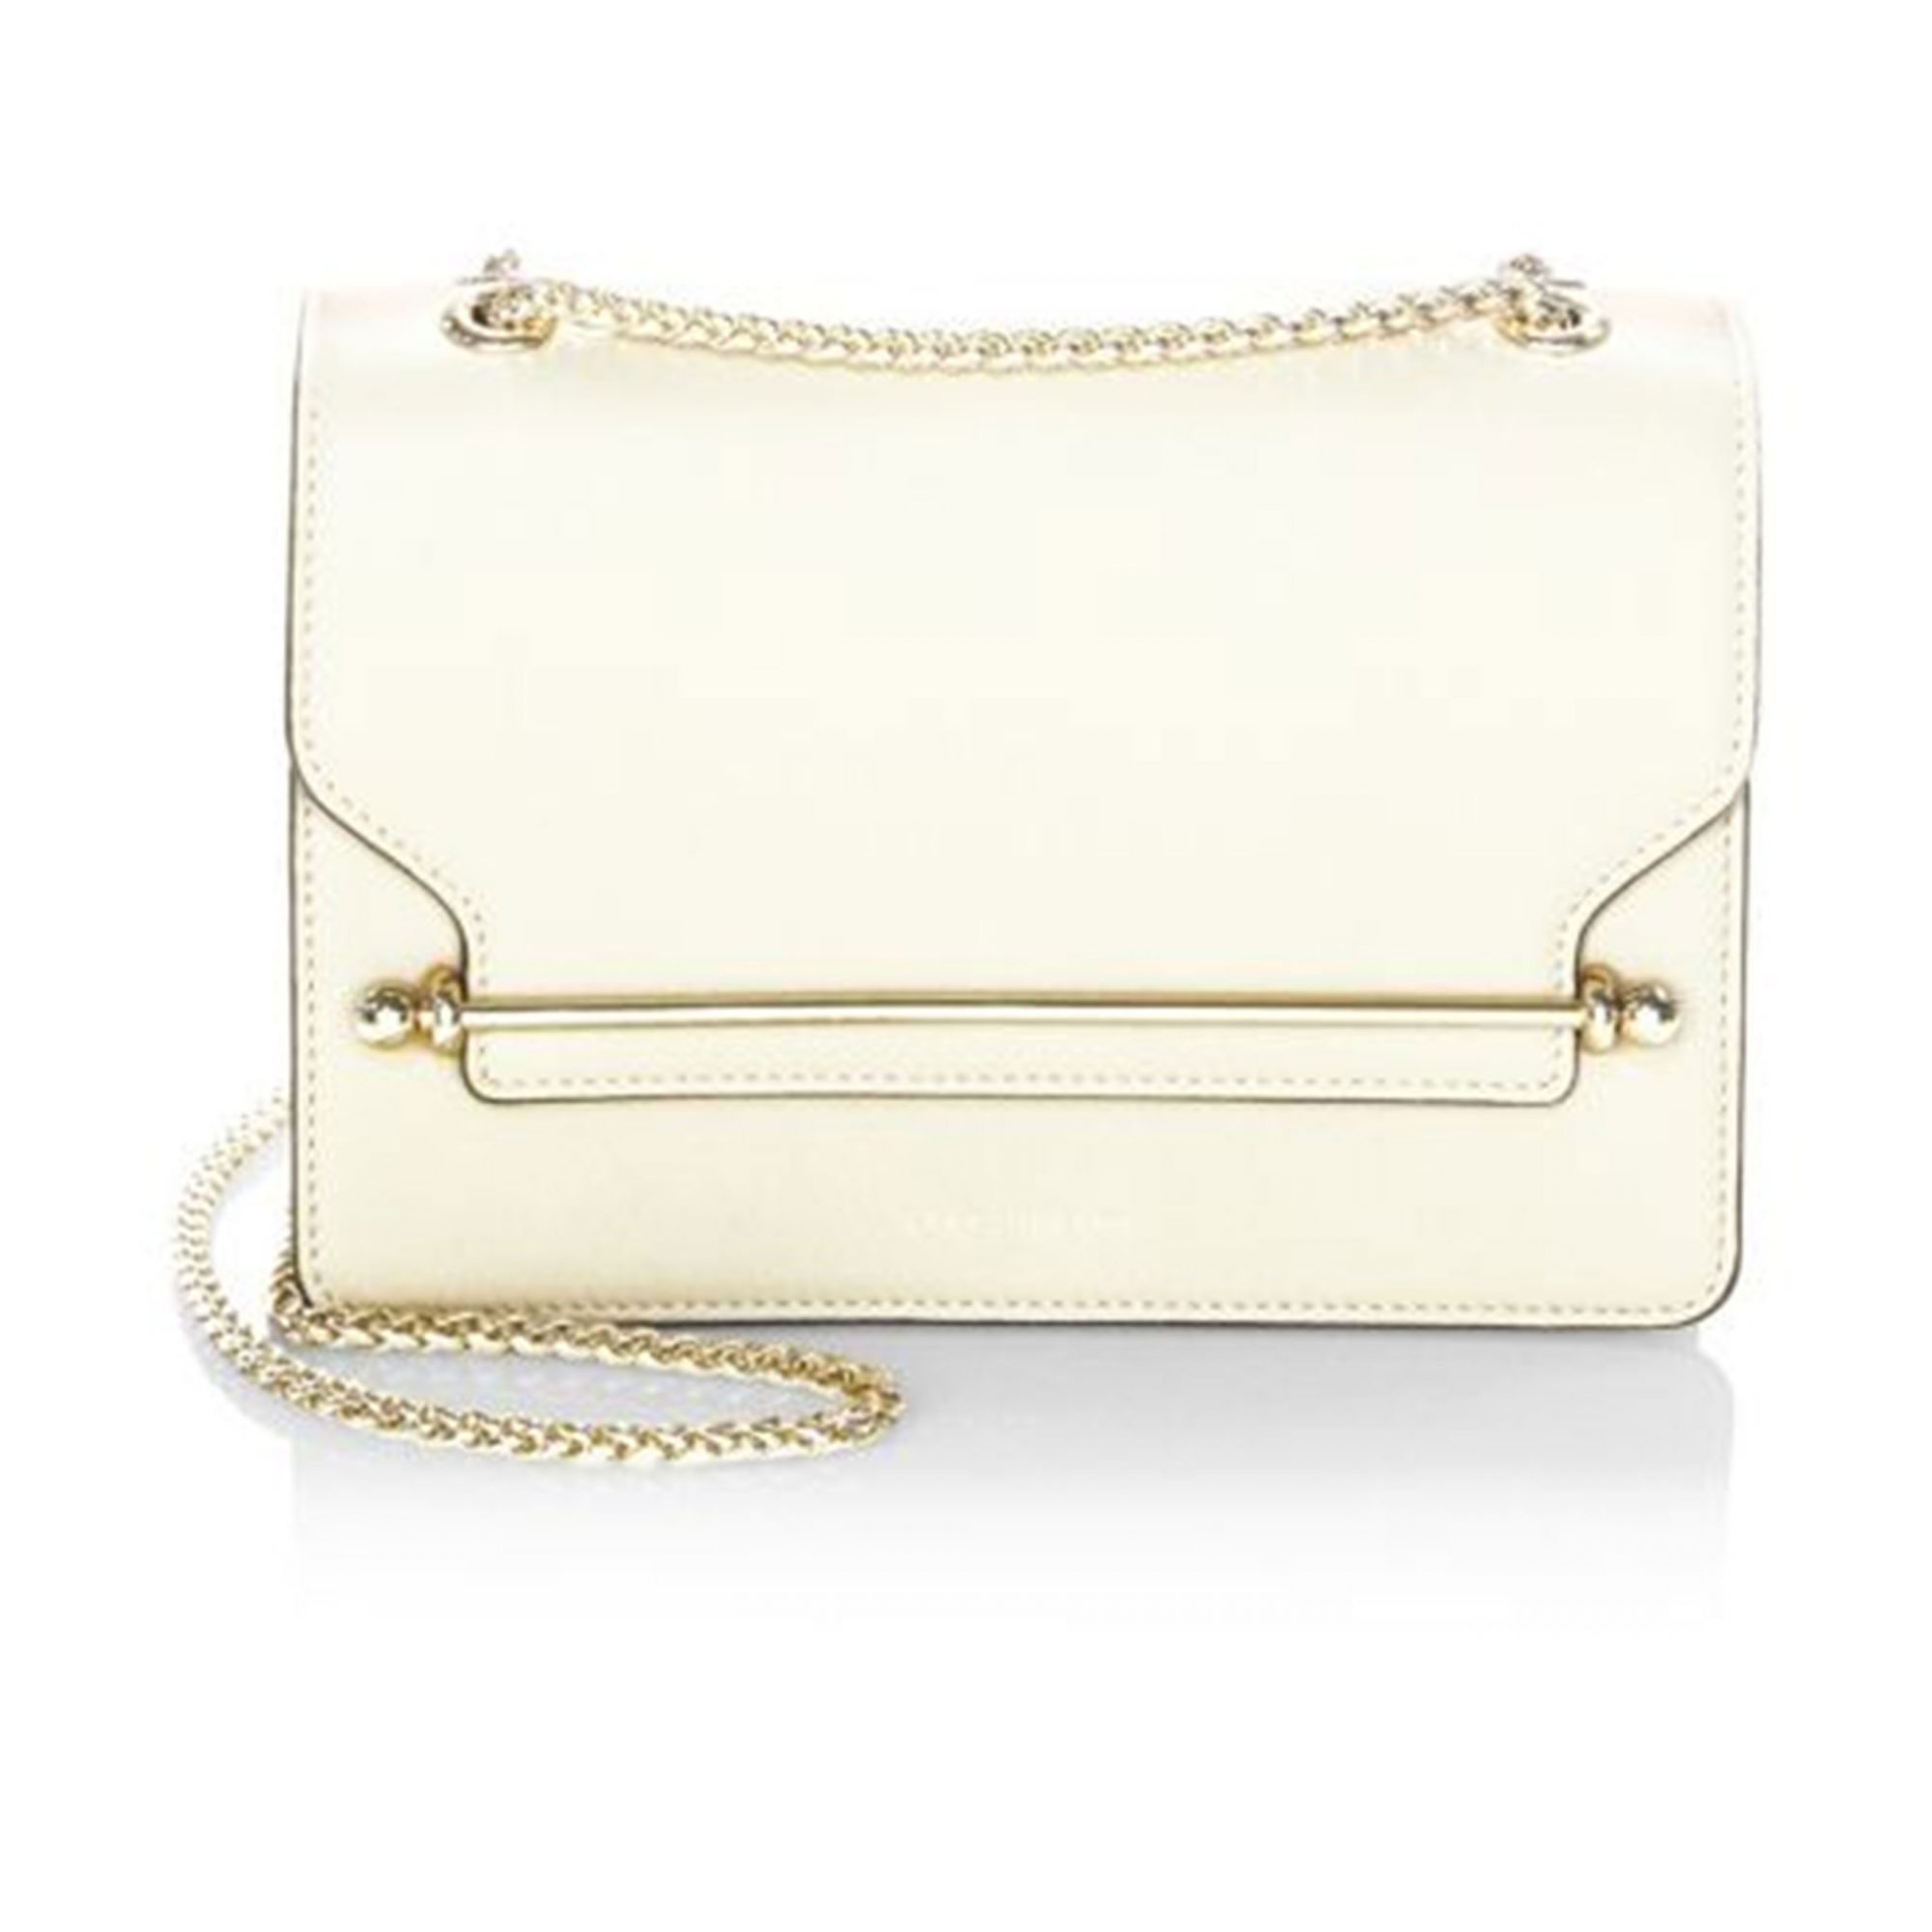 White crossbody bag from Strathberry at Saks Fifth Avenue